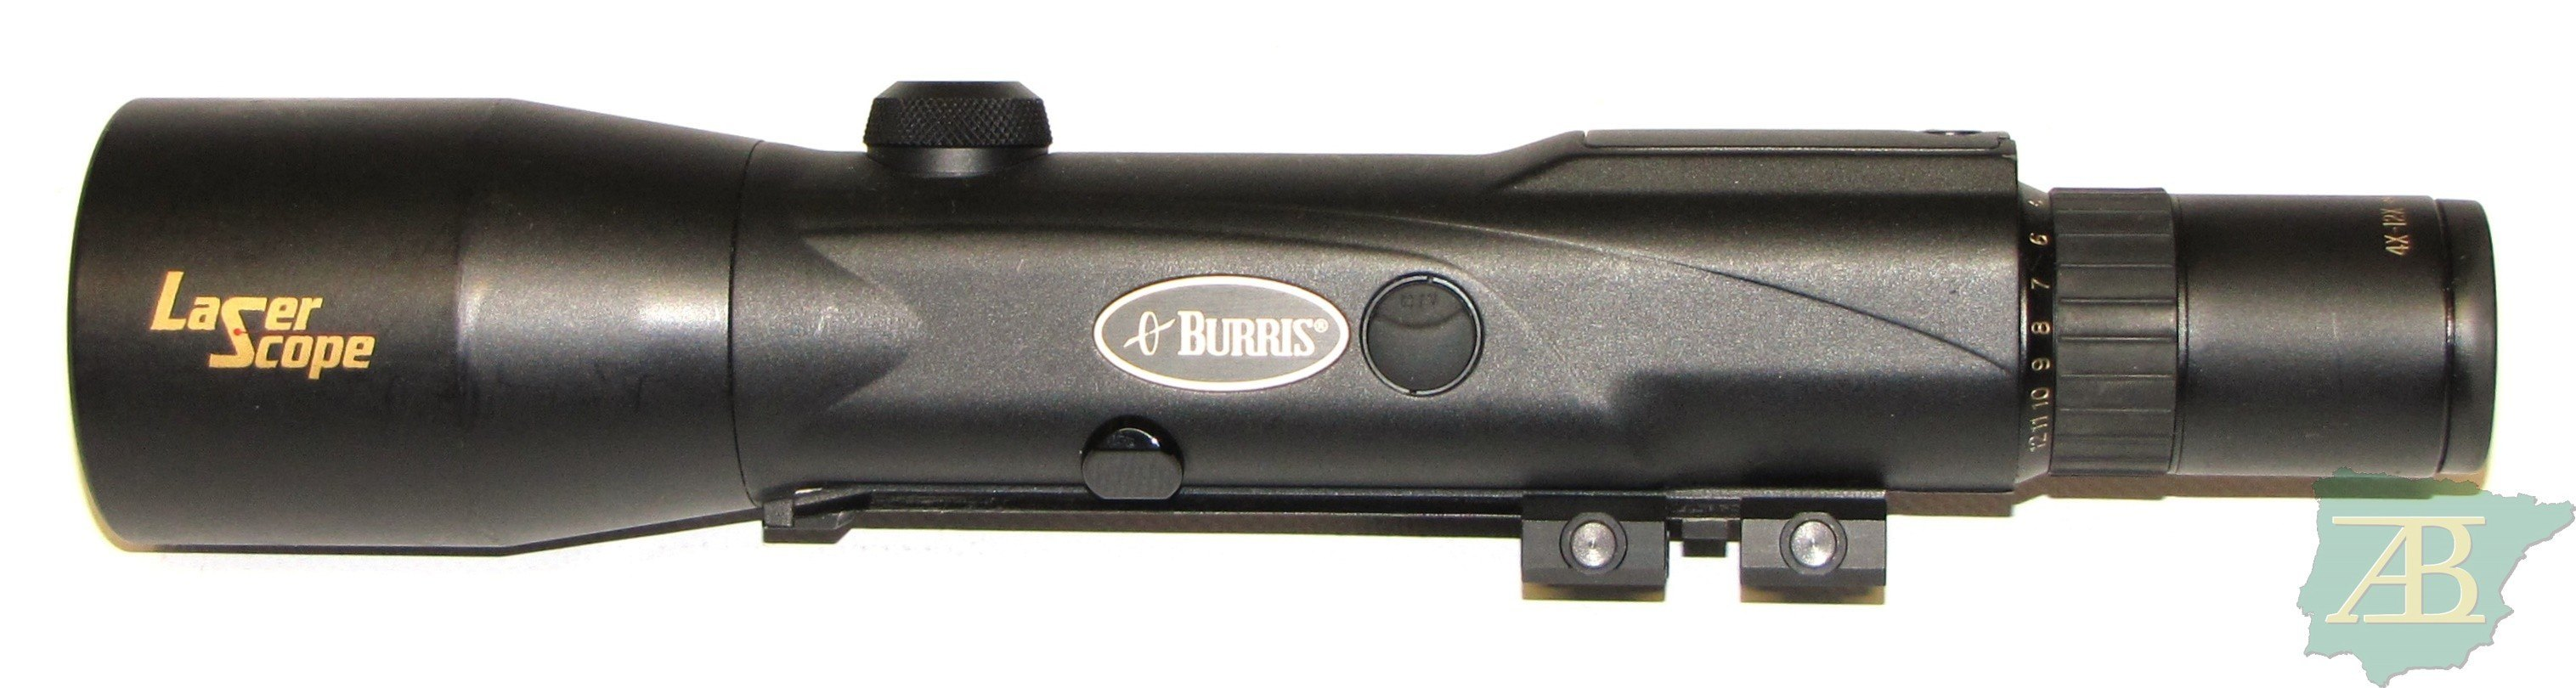 VISOR BURRIS LASER SCOPE 4-12×42 Ref. V29